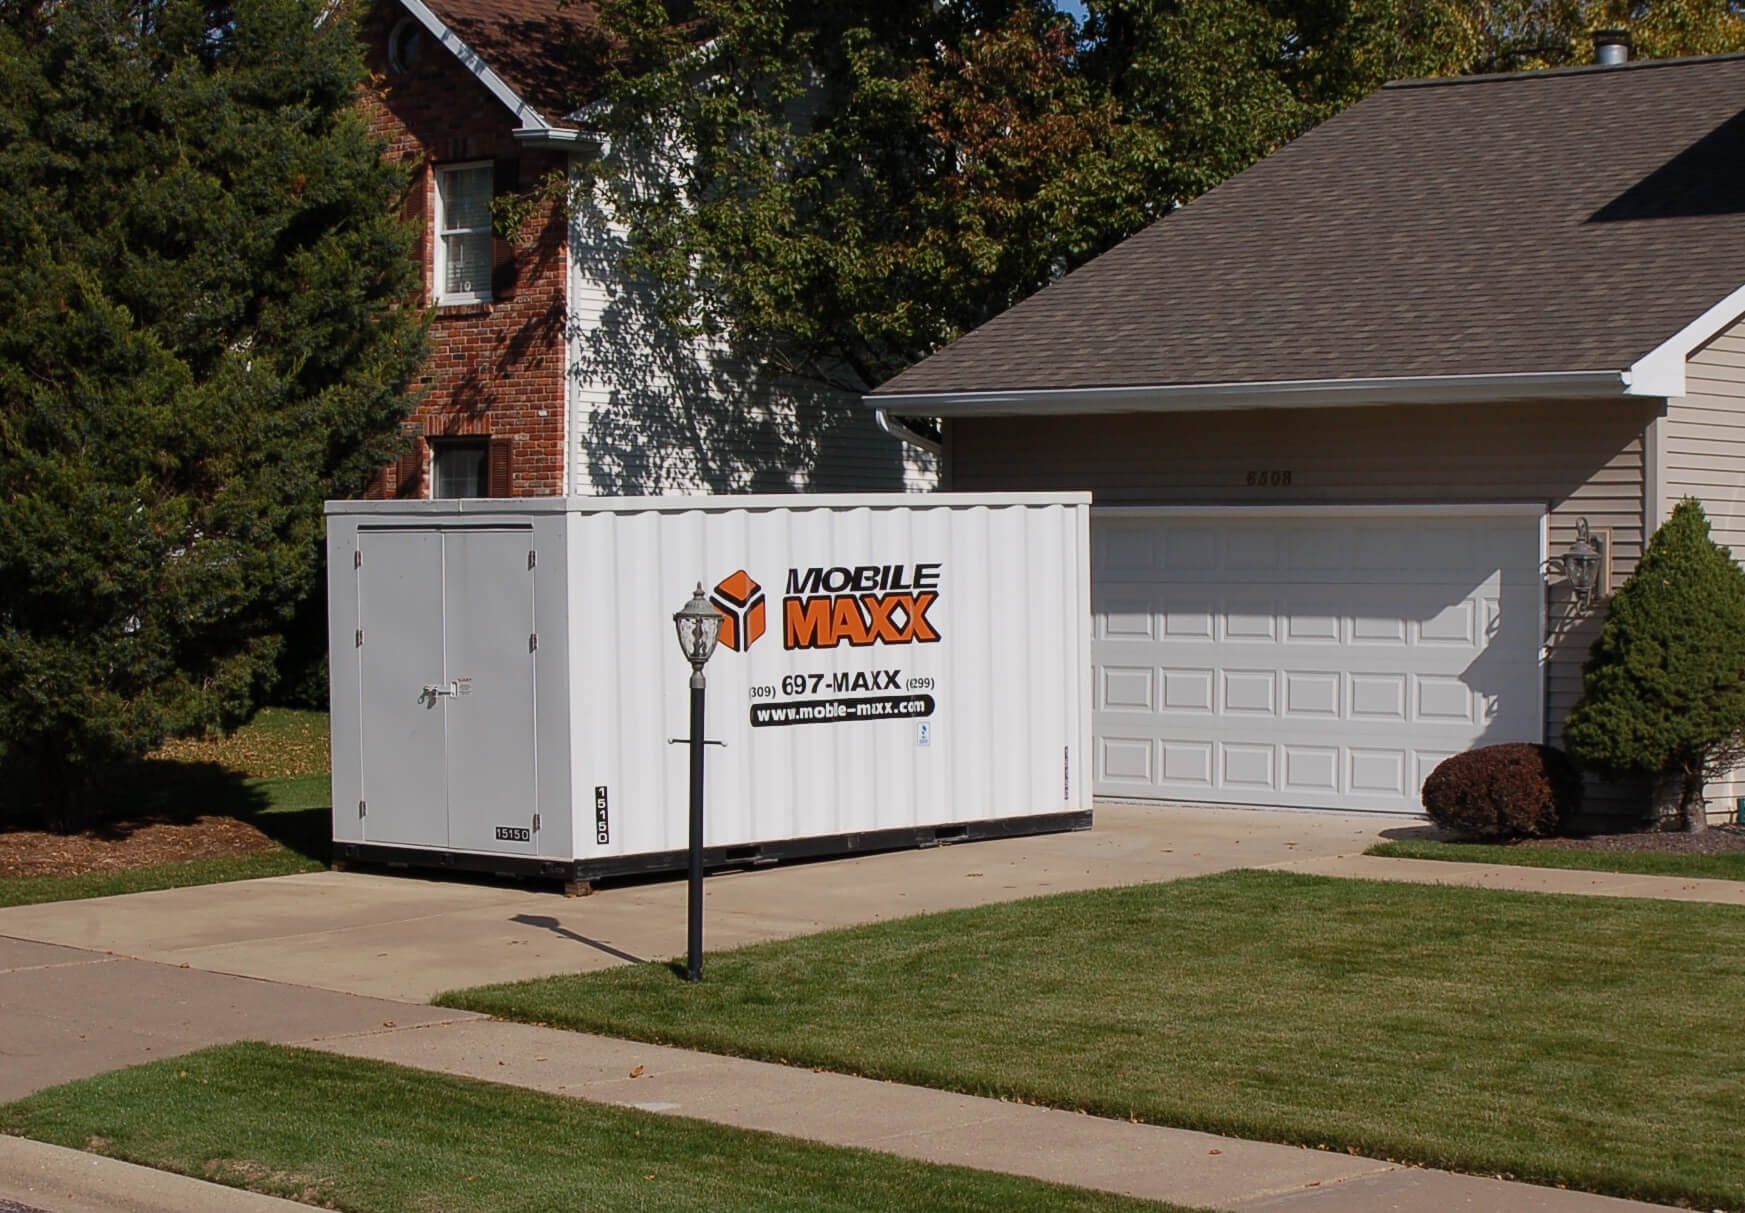 Peoria Storage Mobile Maxx Peoria Il Compare Us To Pods For Mobile Storage Units